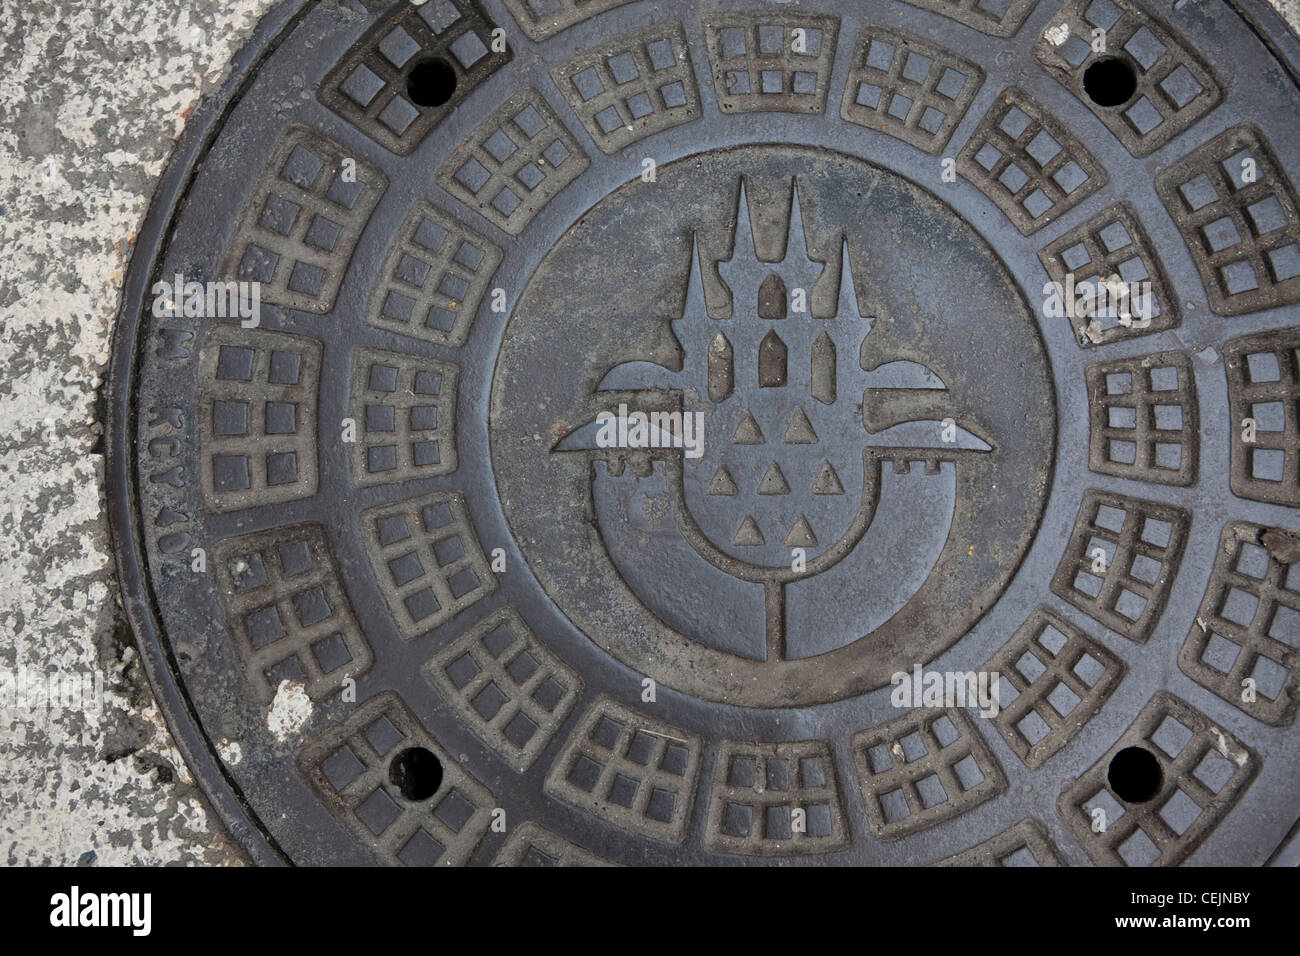 Manhole cover with city seal, Istanbul. - Stock Image